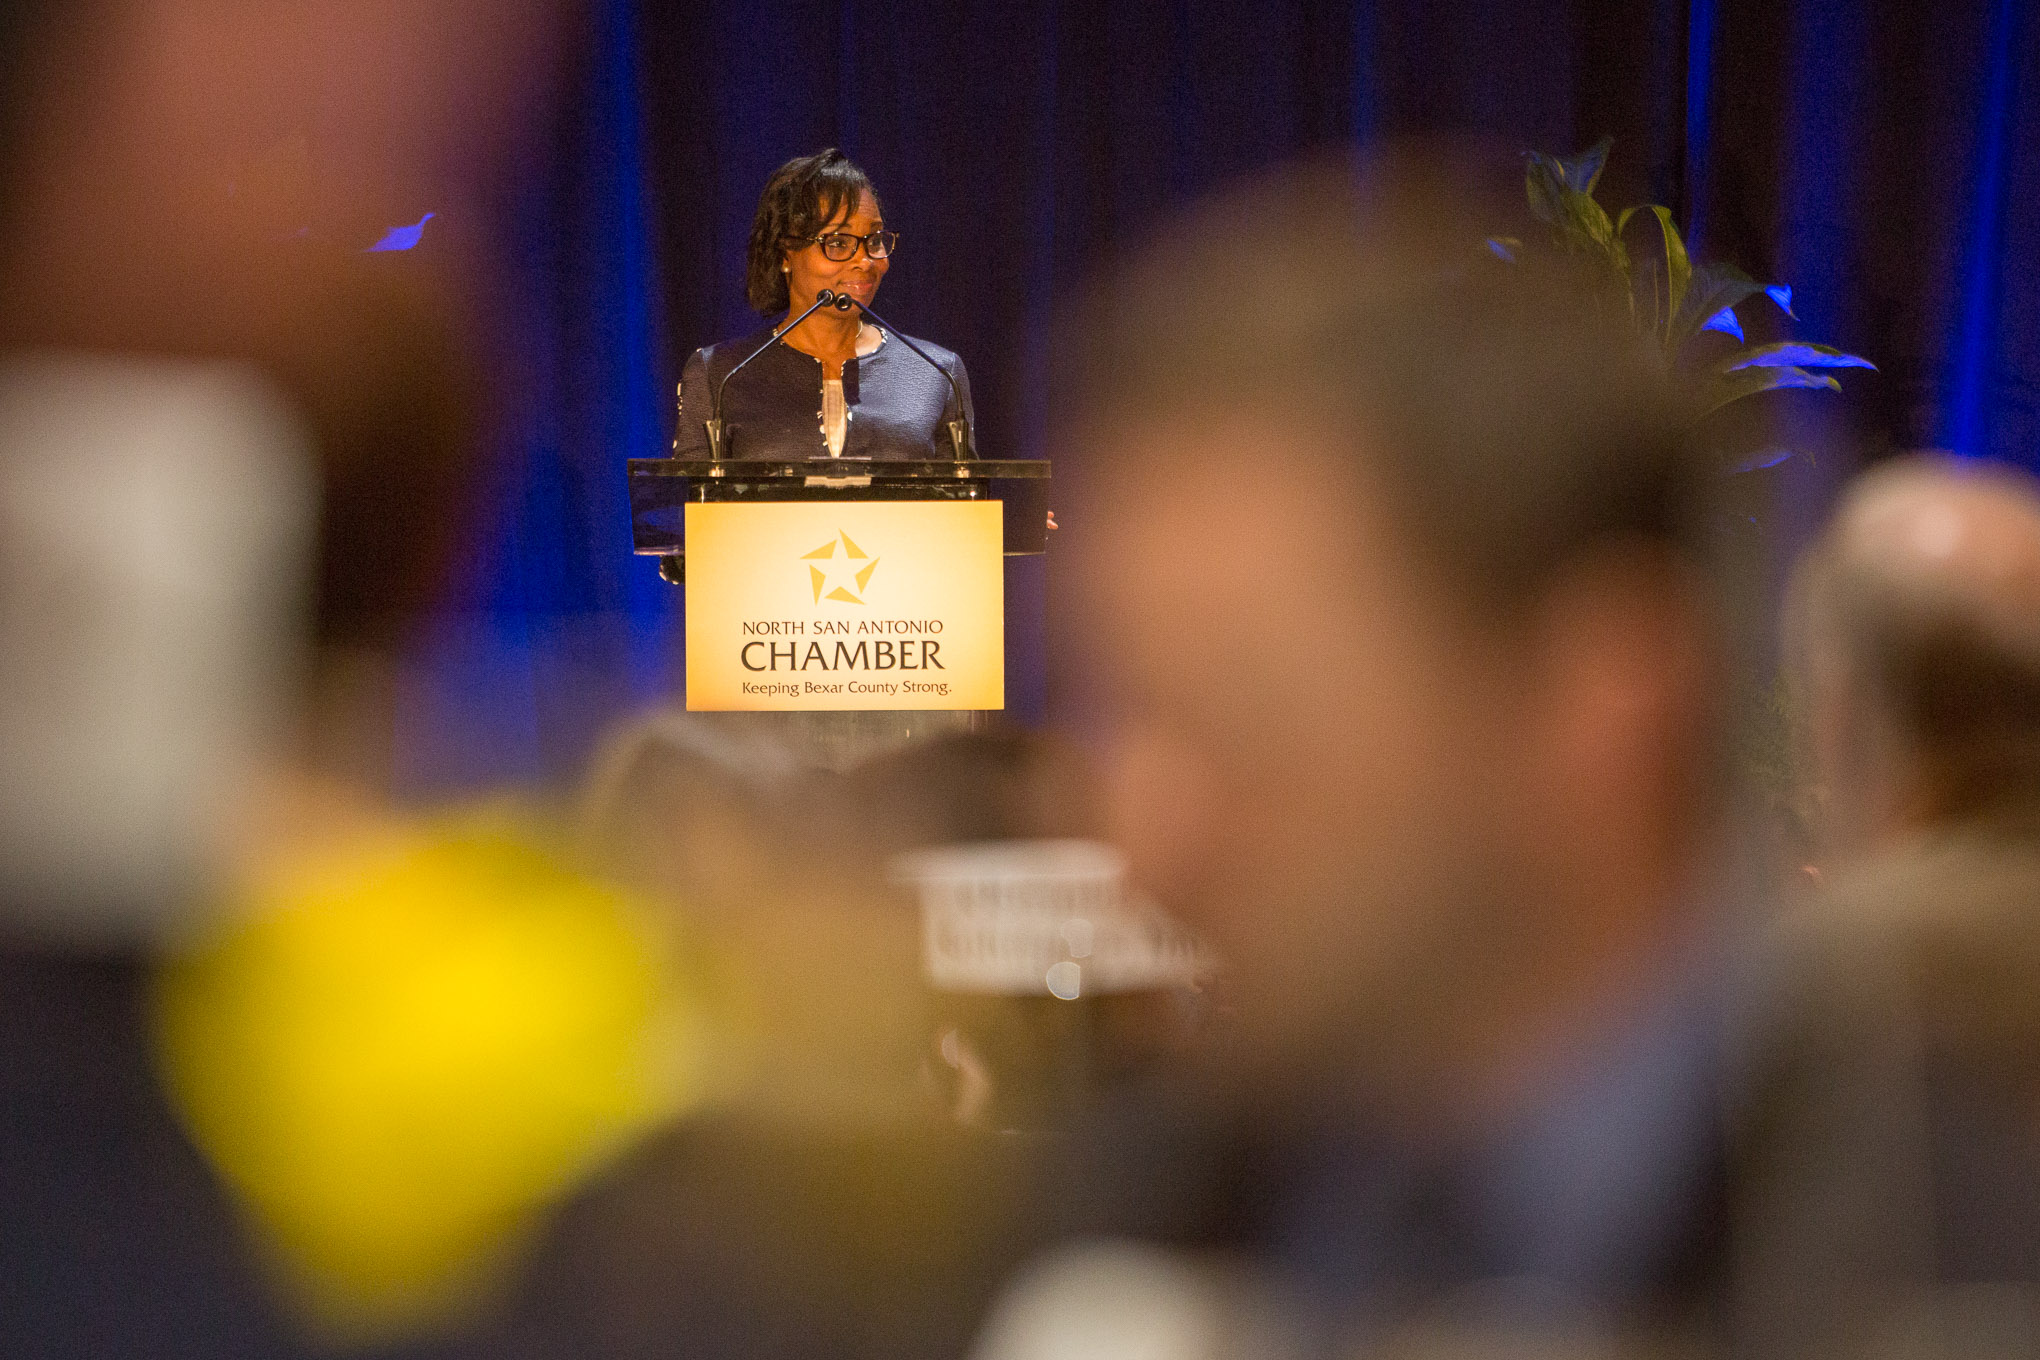 Mayor Ivy Taylor gives the keynote address during the event hosted by the San Antonio North Chamber. Photo by Scott Ball.